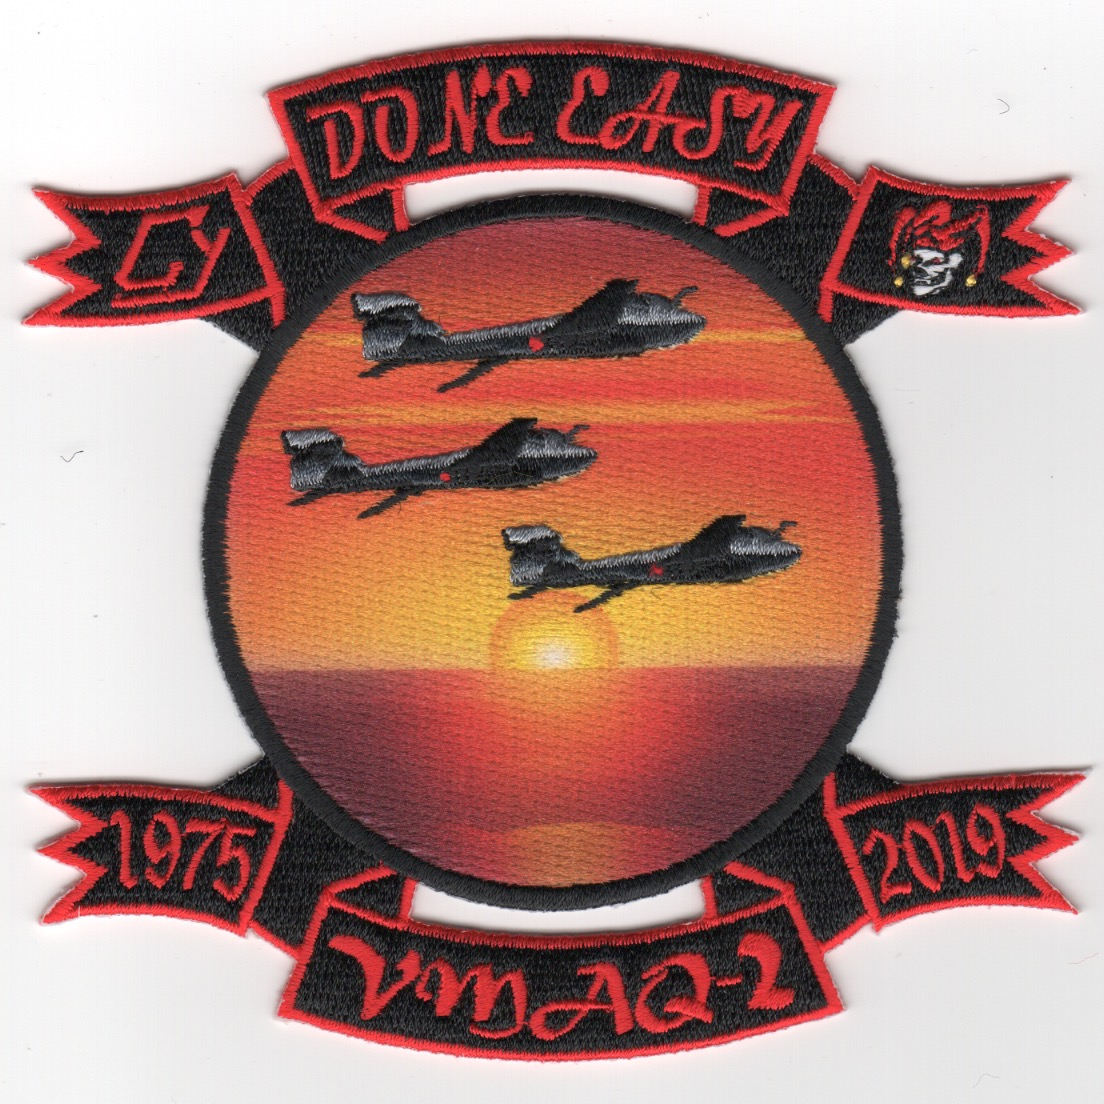 VMAQ-2 'DONE EASY' Decomm Patch